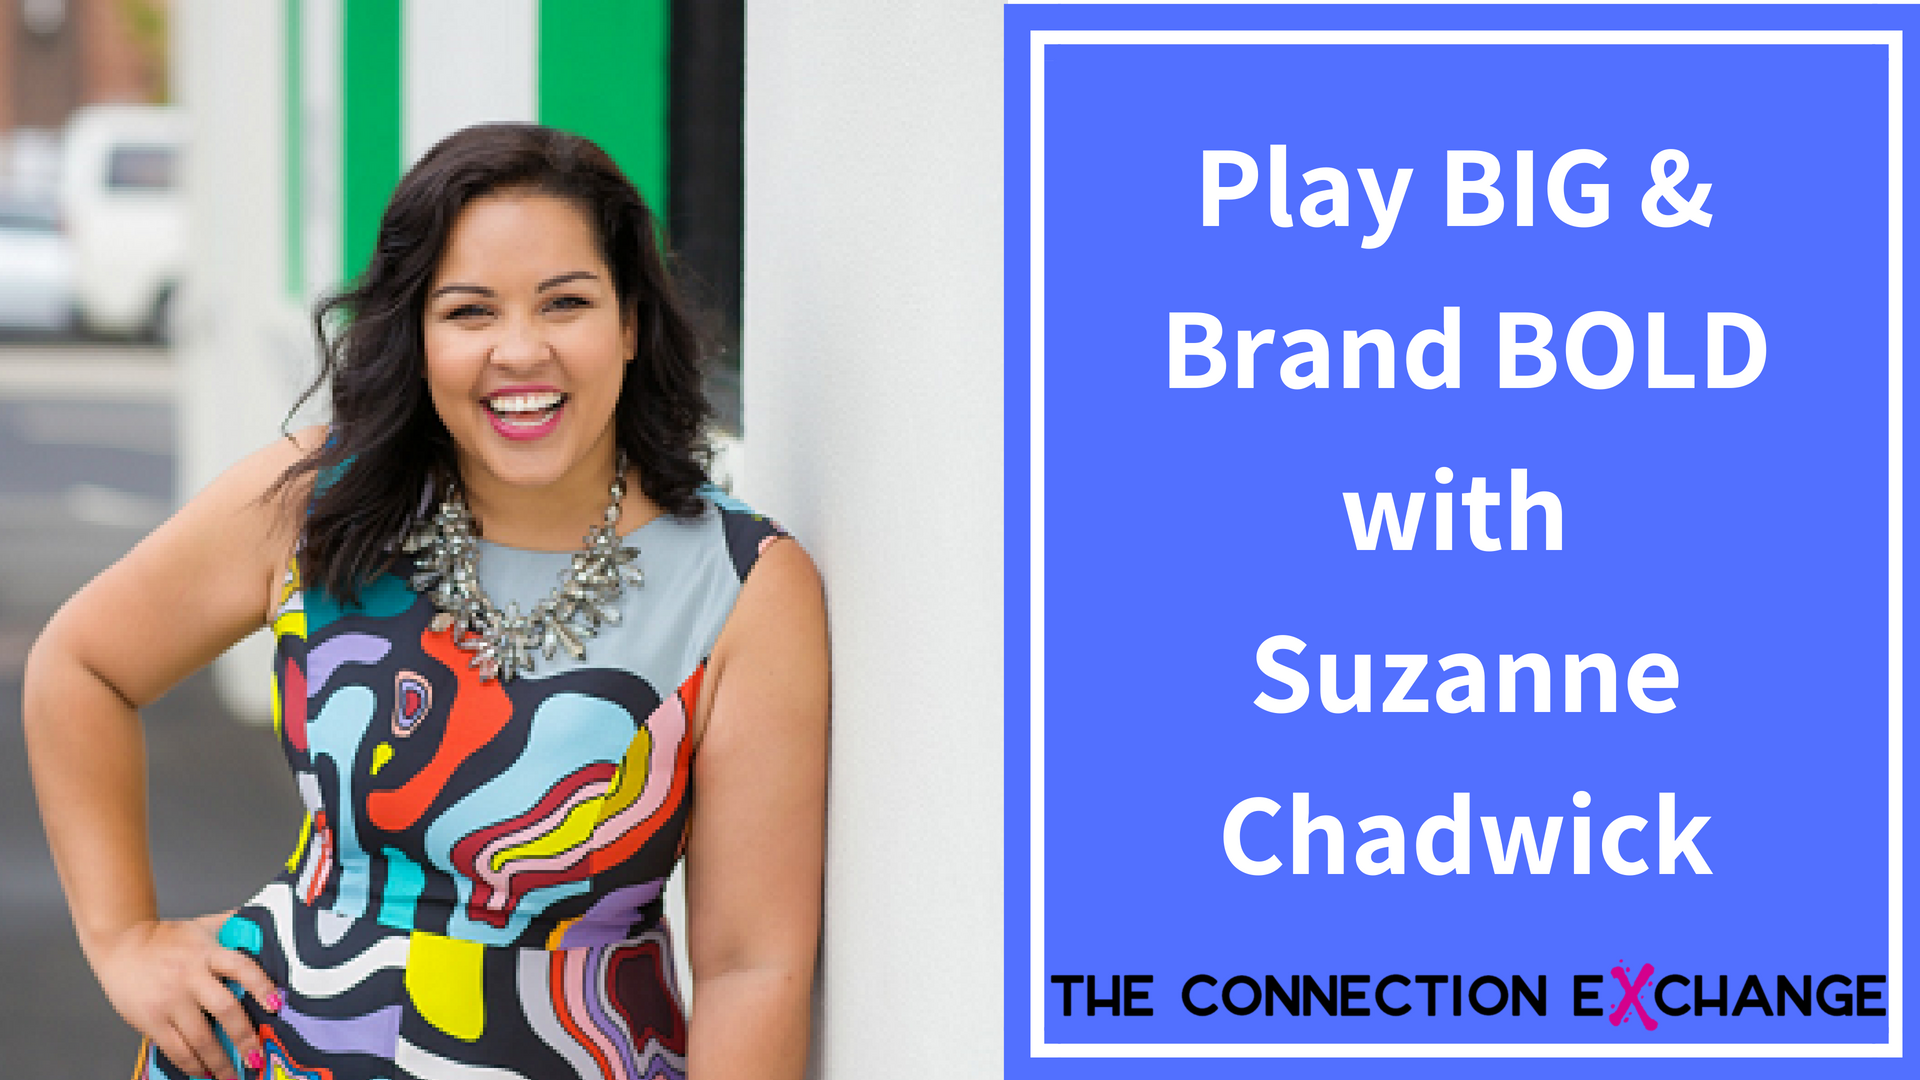 Copy of E4. Female entrepreneurs wanting to play big & brand bold (Suzanne Chadwick).png